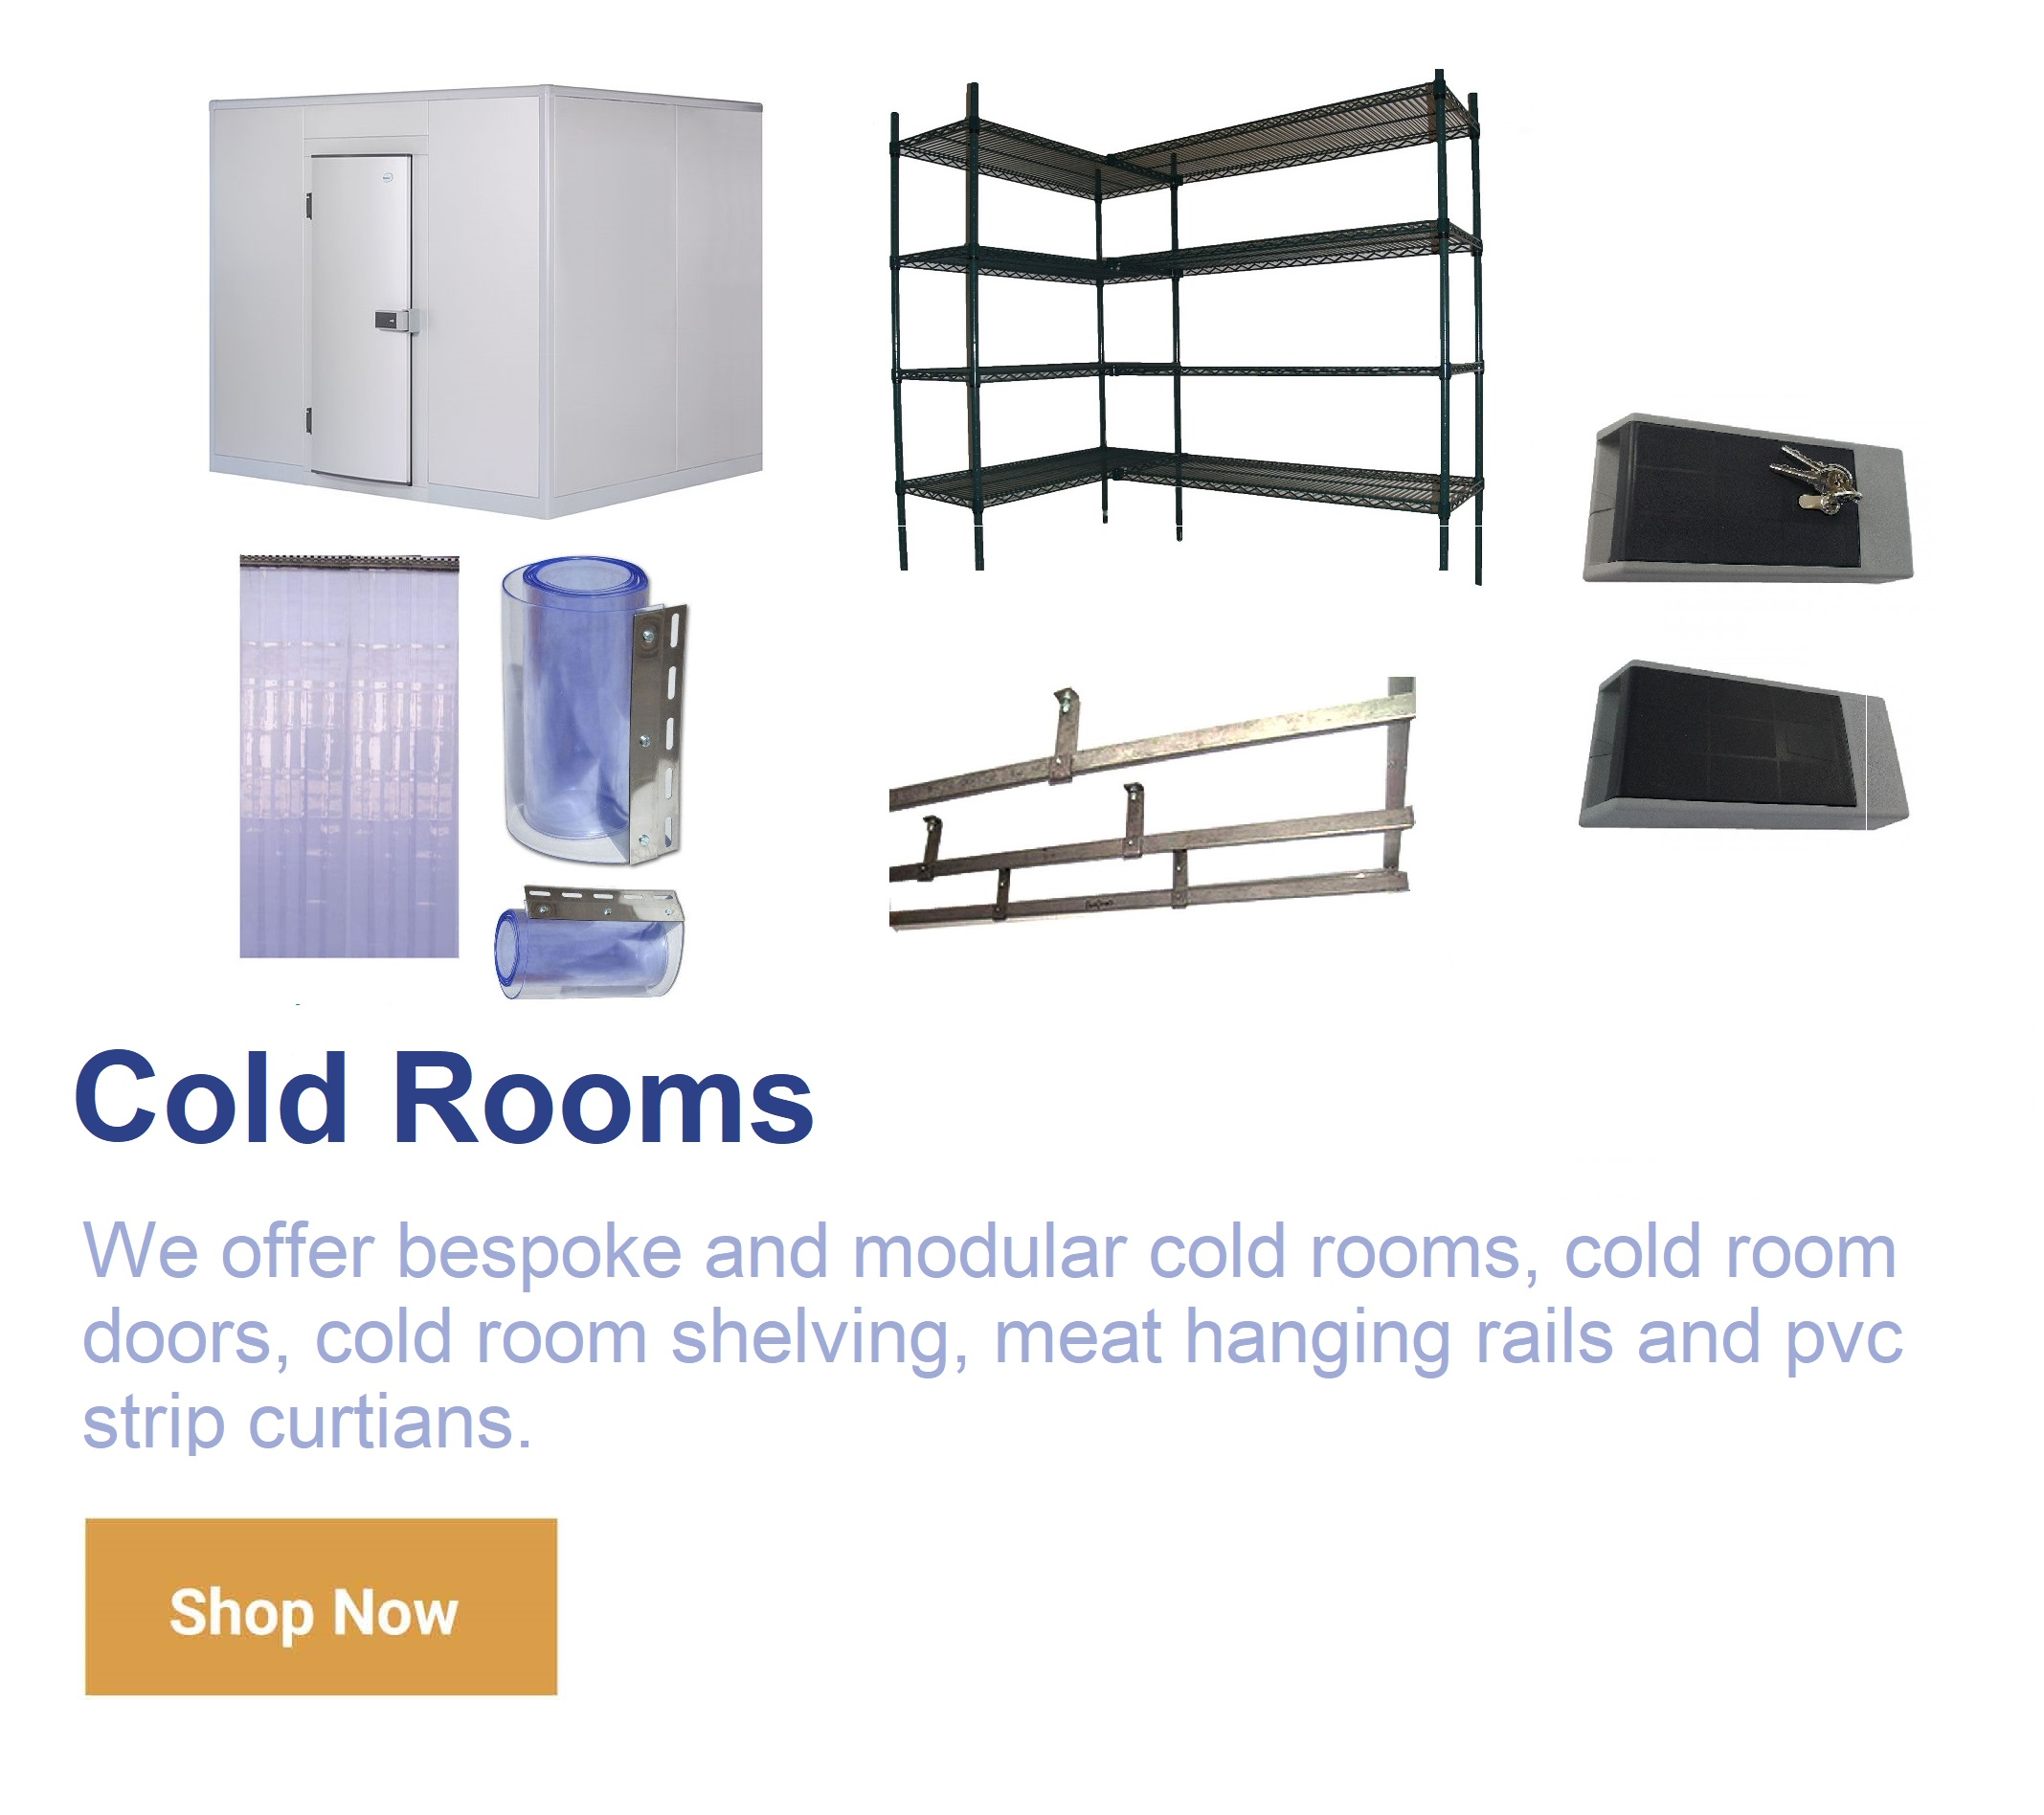 Shop Cold Rooms